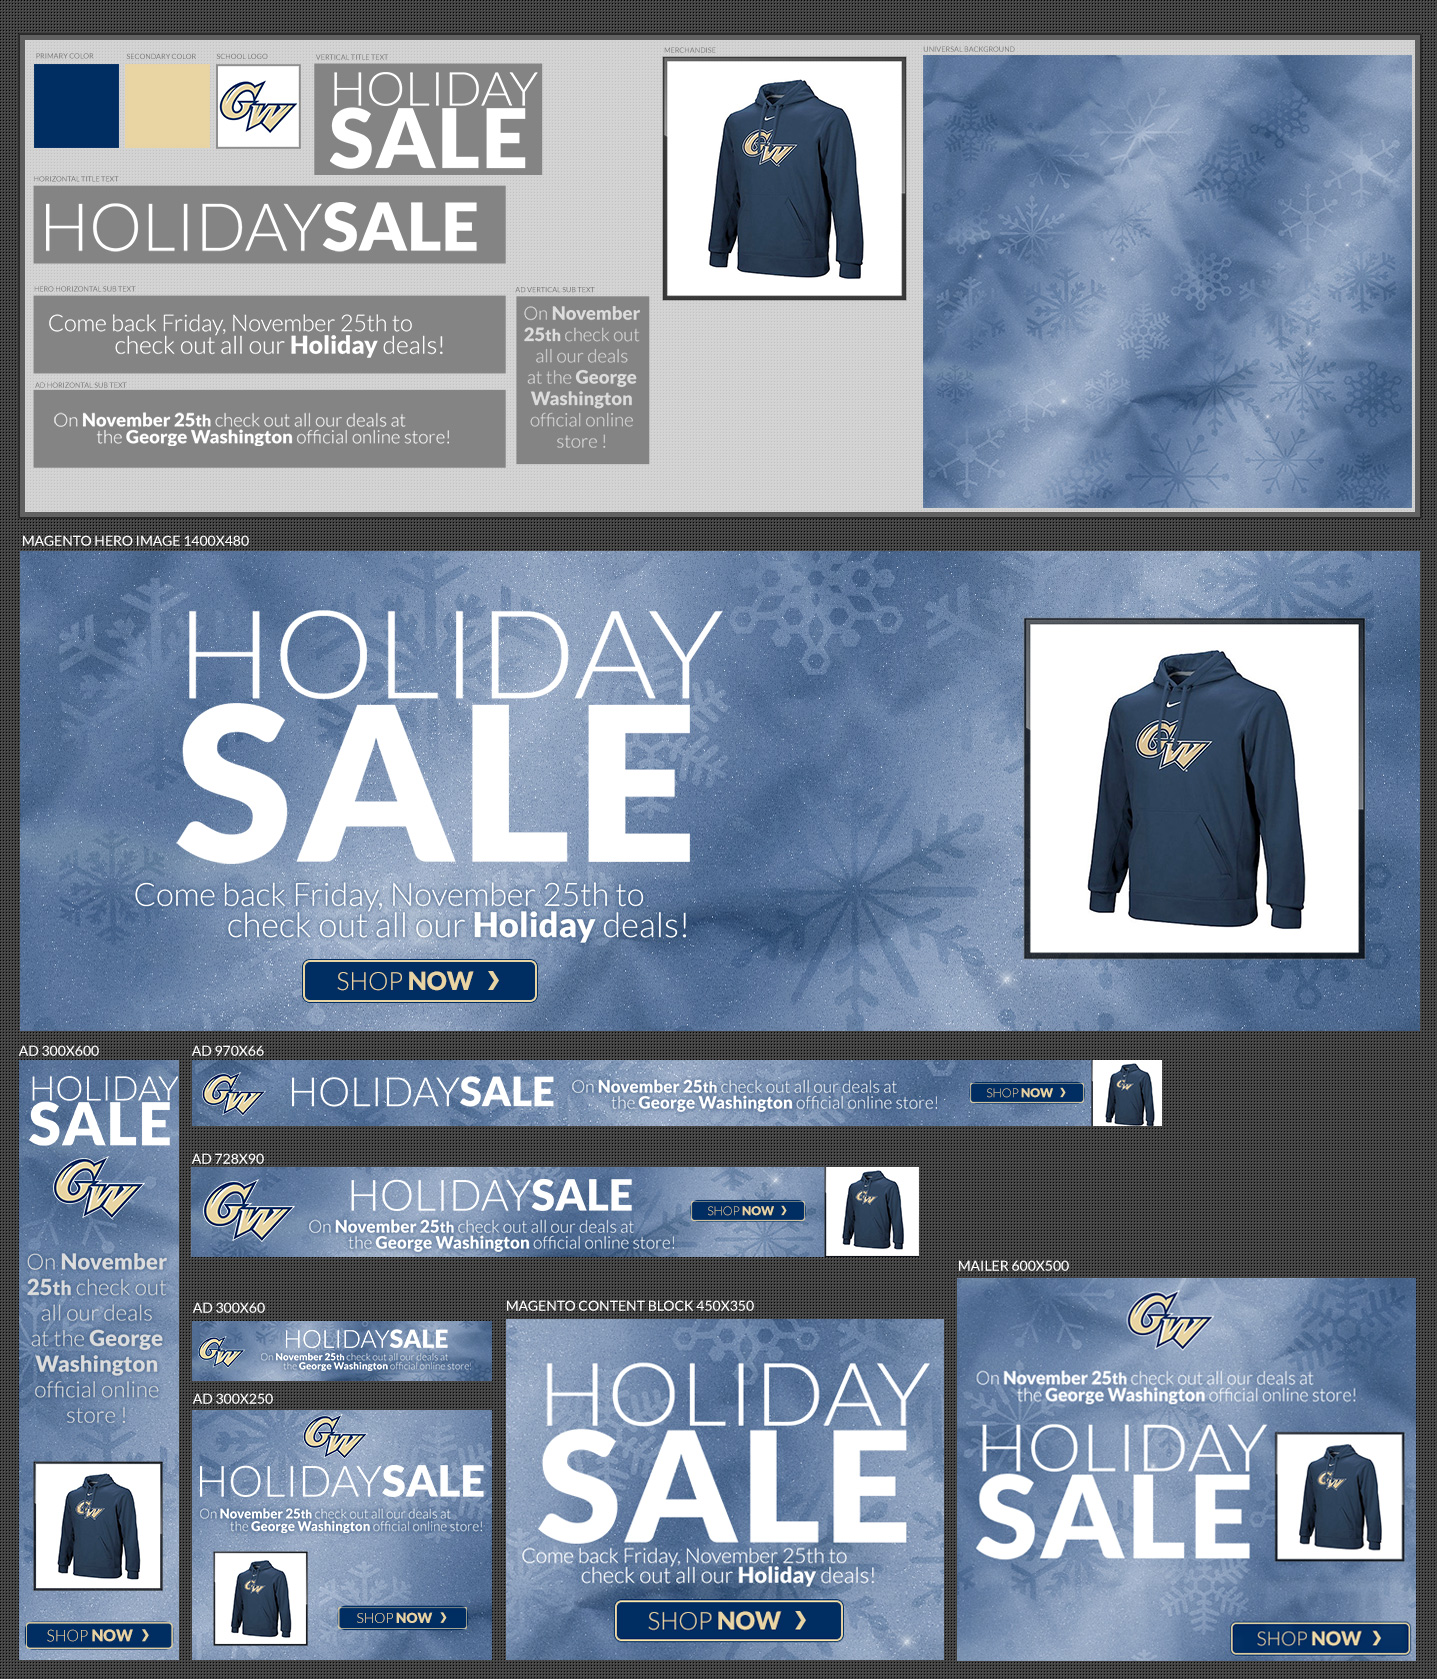 Universal Digital Ad Template created for e-comm dept.